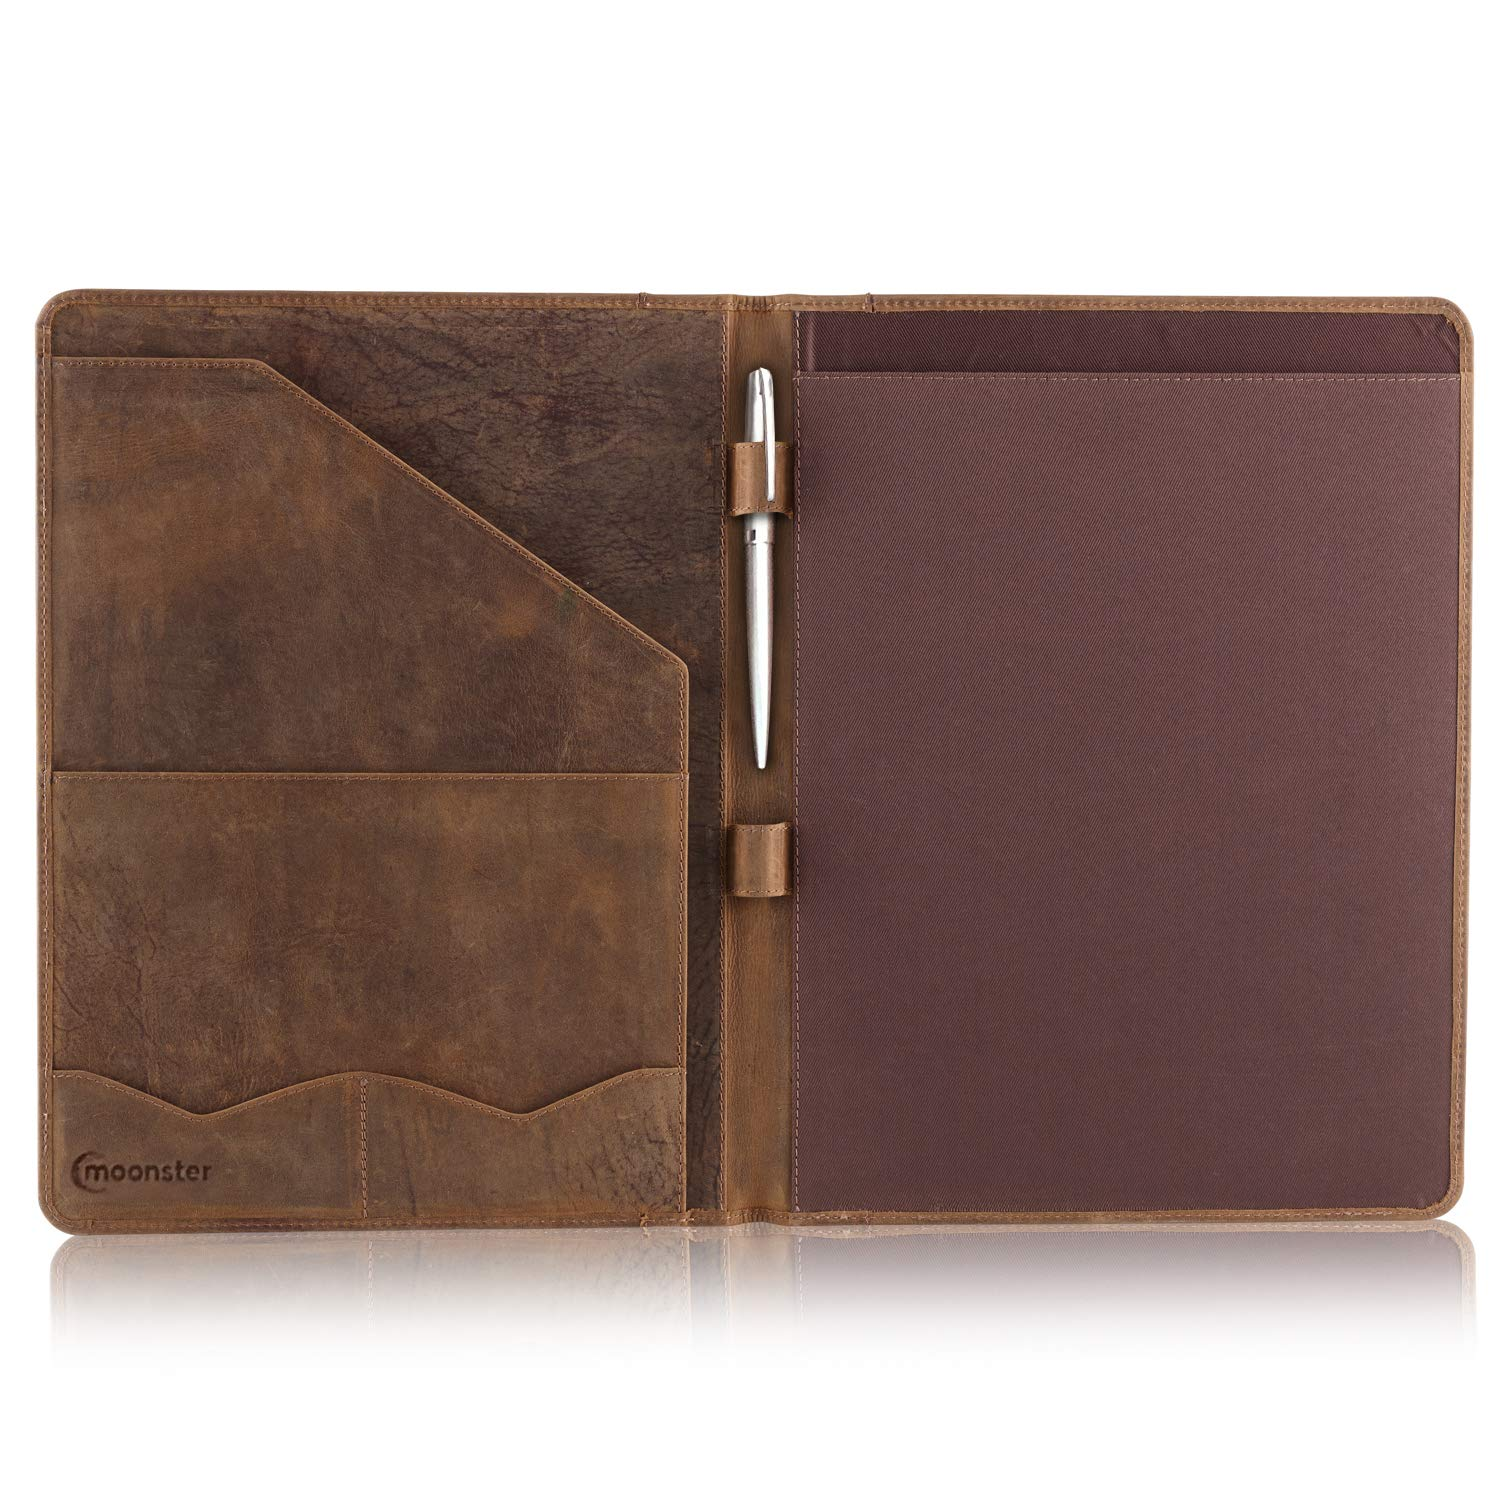 Leather Portfolio Professional Resume Padfolio - Document Folder & Organizer Folio for Letter-Size & A4 Writing Pad with Business Card Holder, Ideal Gift Portfolios for Men + Women by Moonster